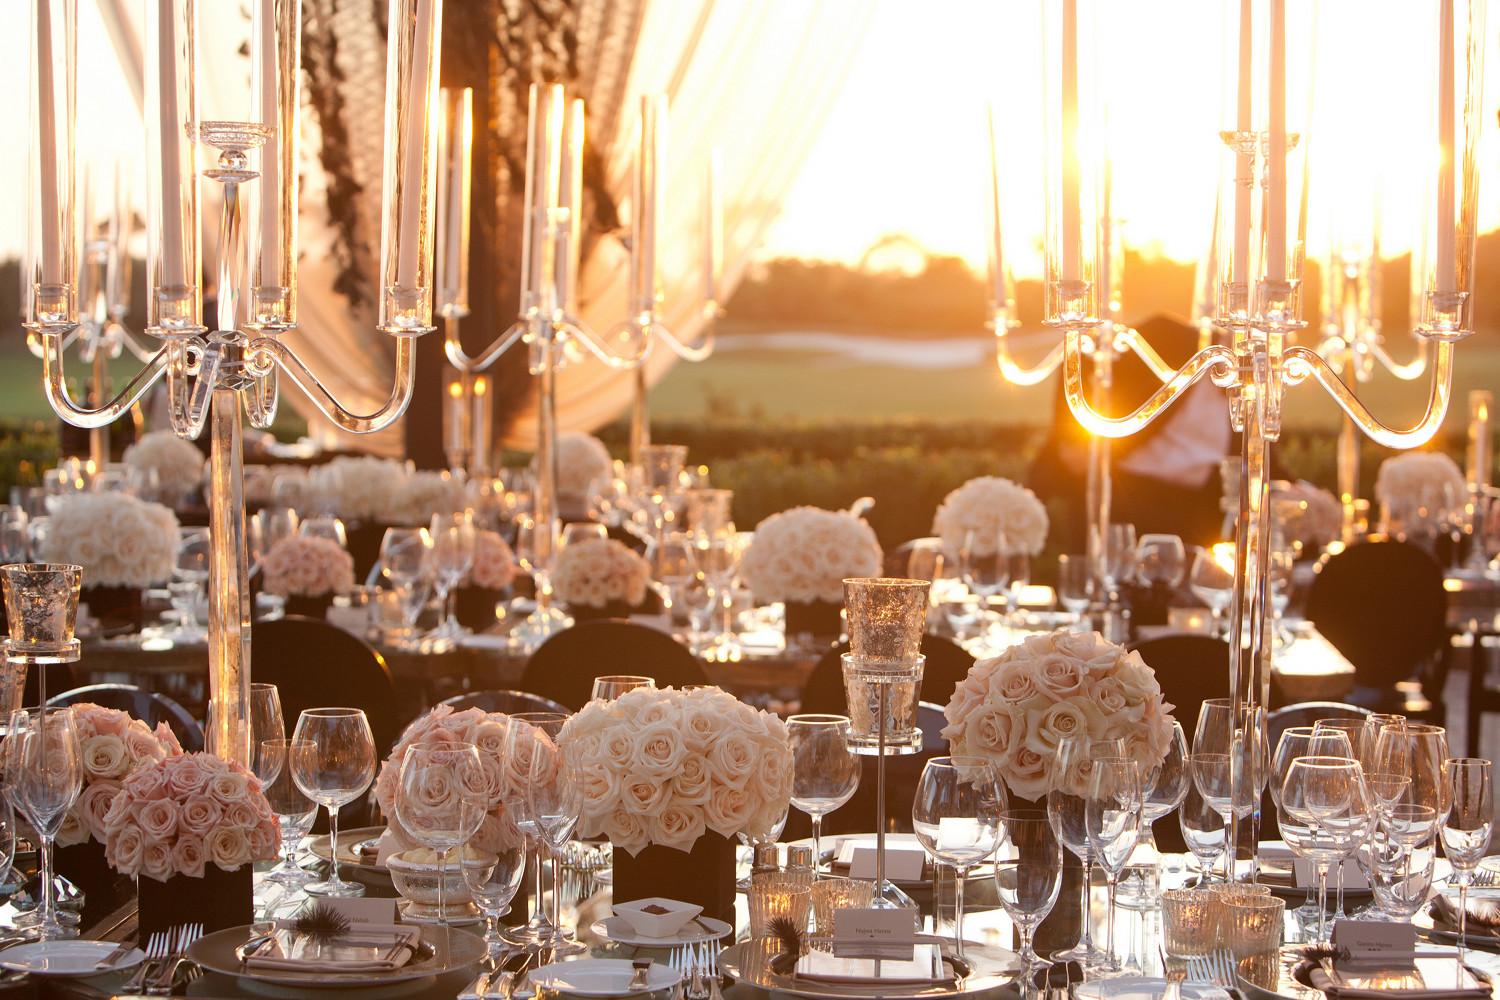 Sunset wedding reception with modern candelabras and for The best wedding decorations